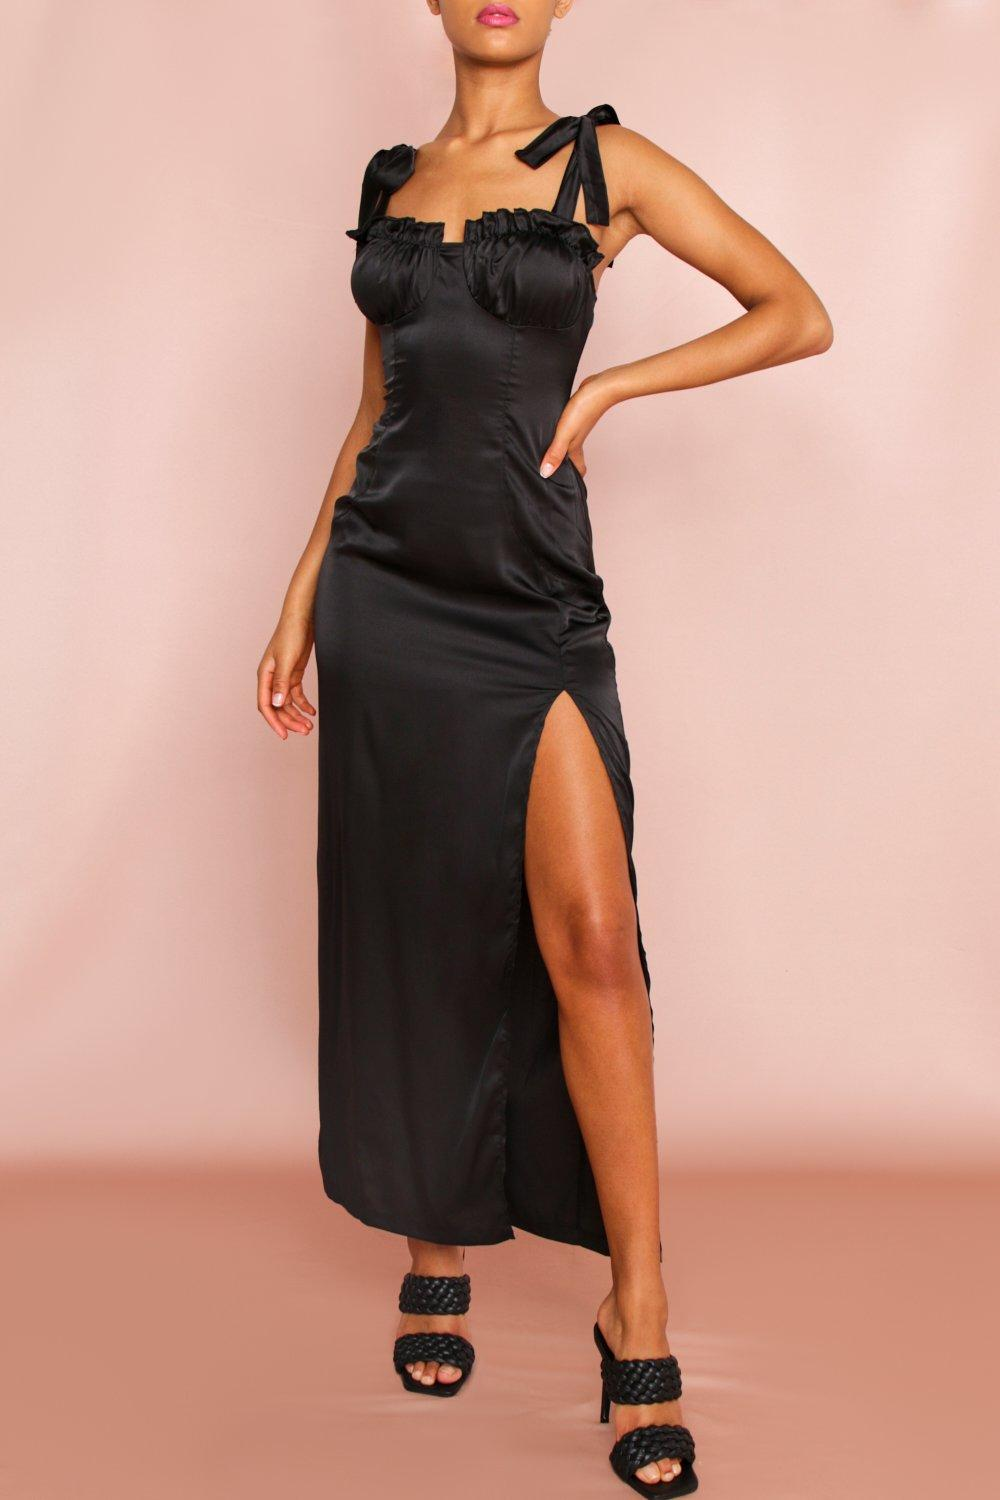 Ruched Bust Tie Strap Maxi Dress